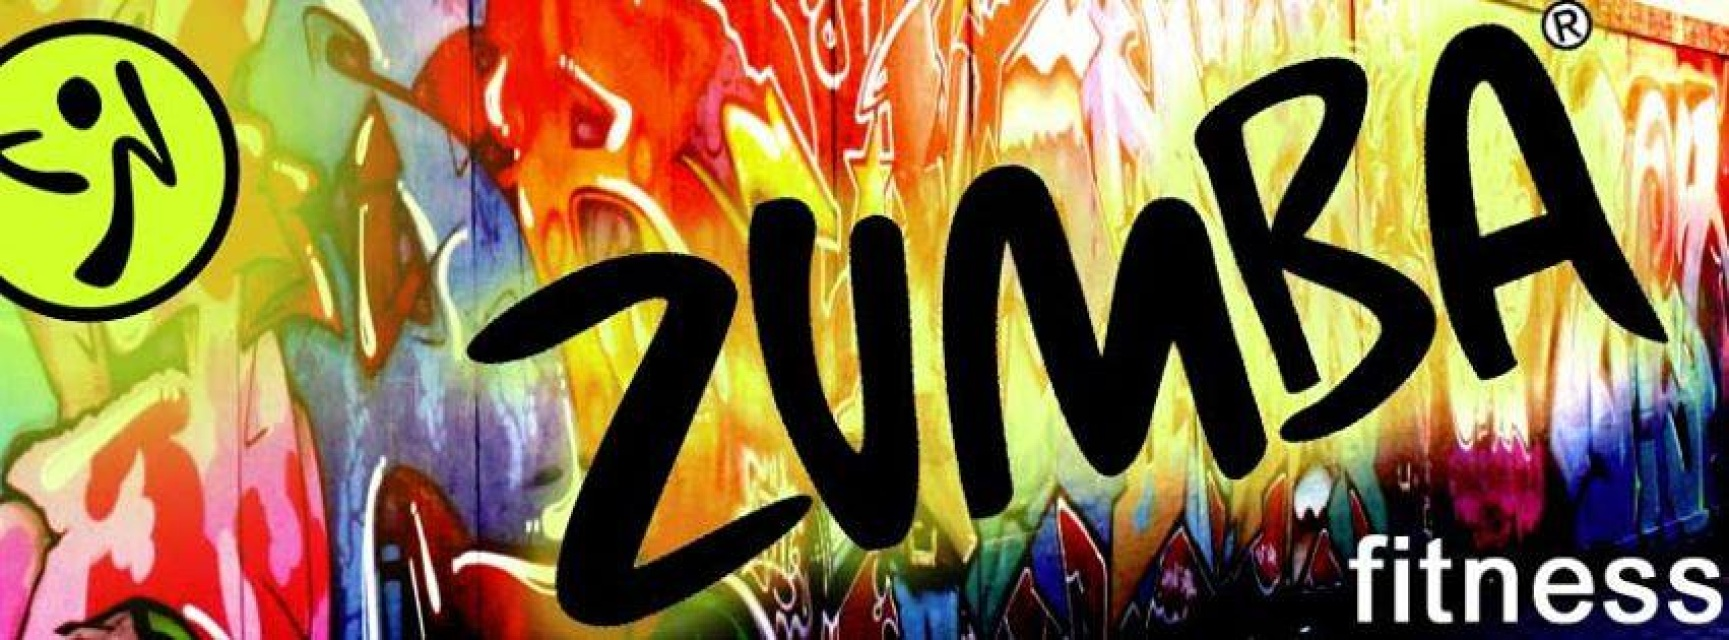 how to dance zumba fitness